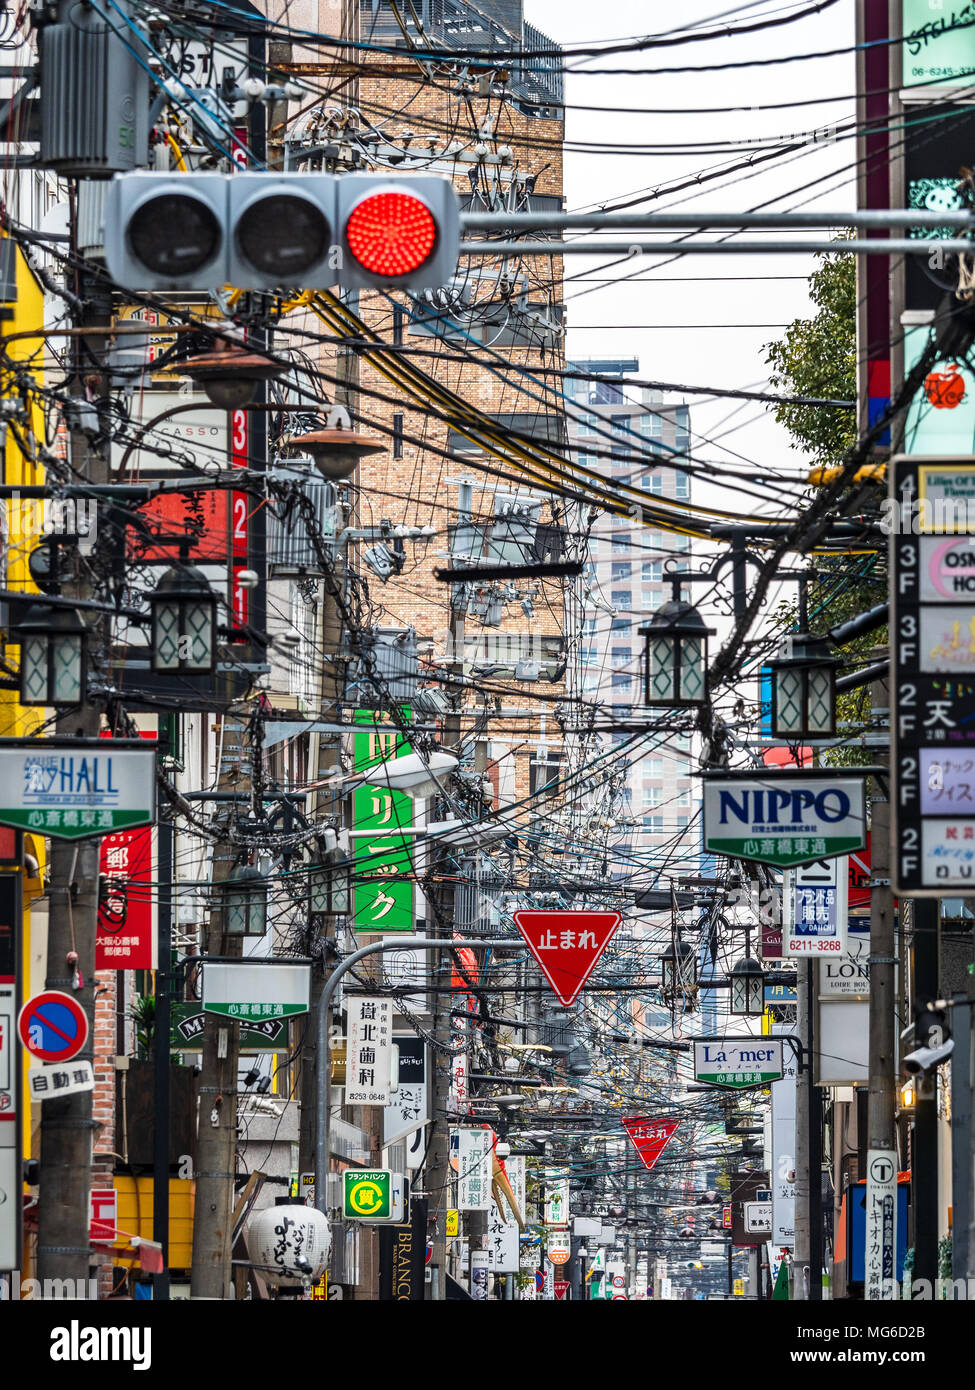 Osaka Japan Congested overhead cables in a street in Osaka Japan. Unlike most advanced nations the majority of Japan's power grid remains above ground - Stock Image